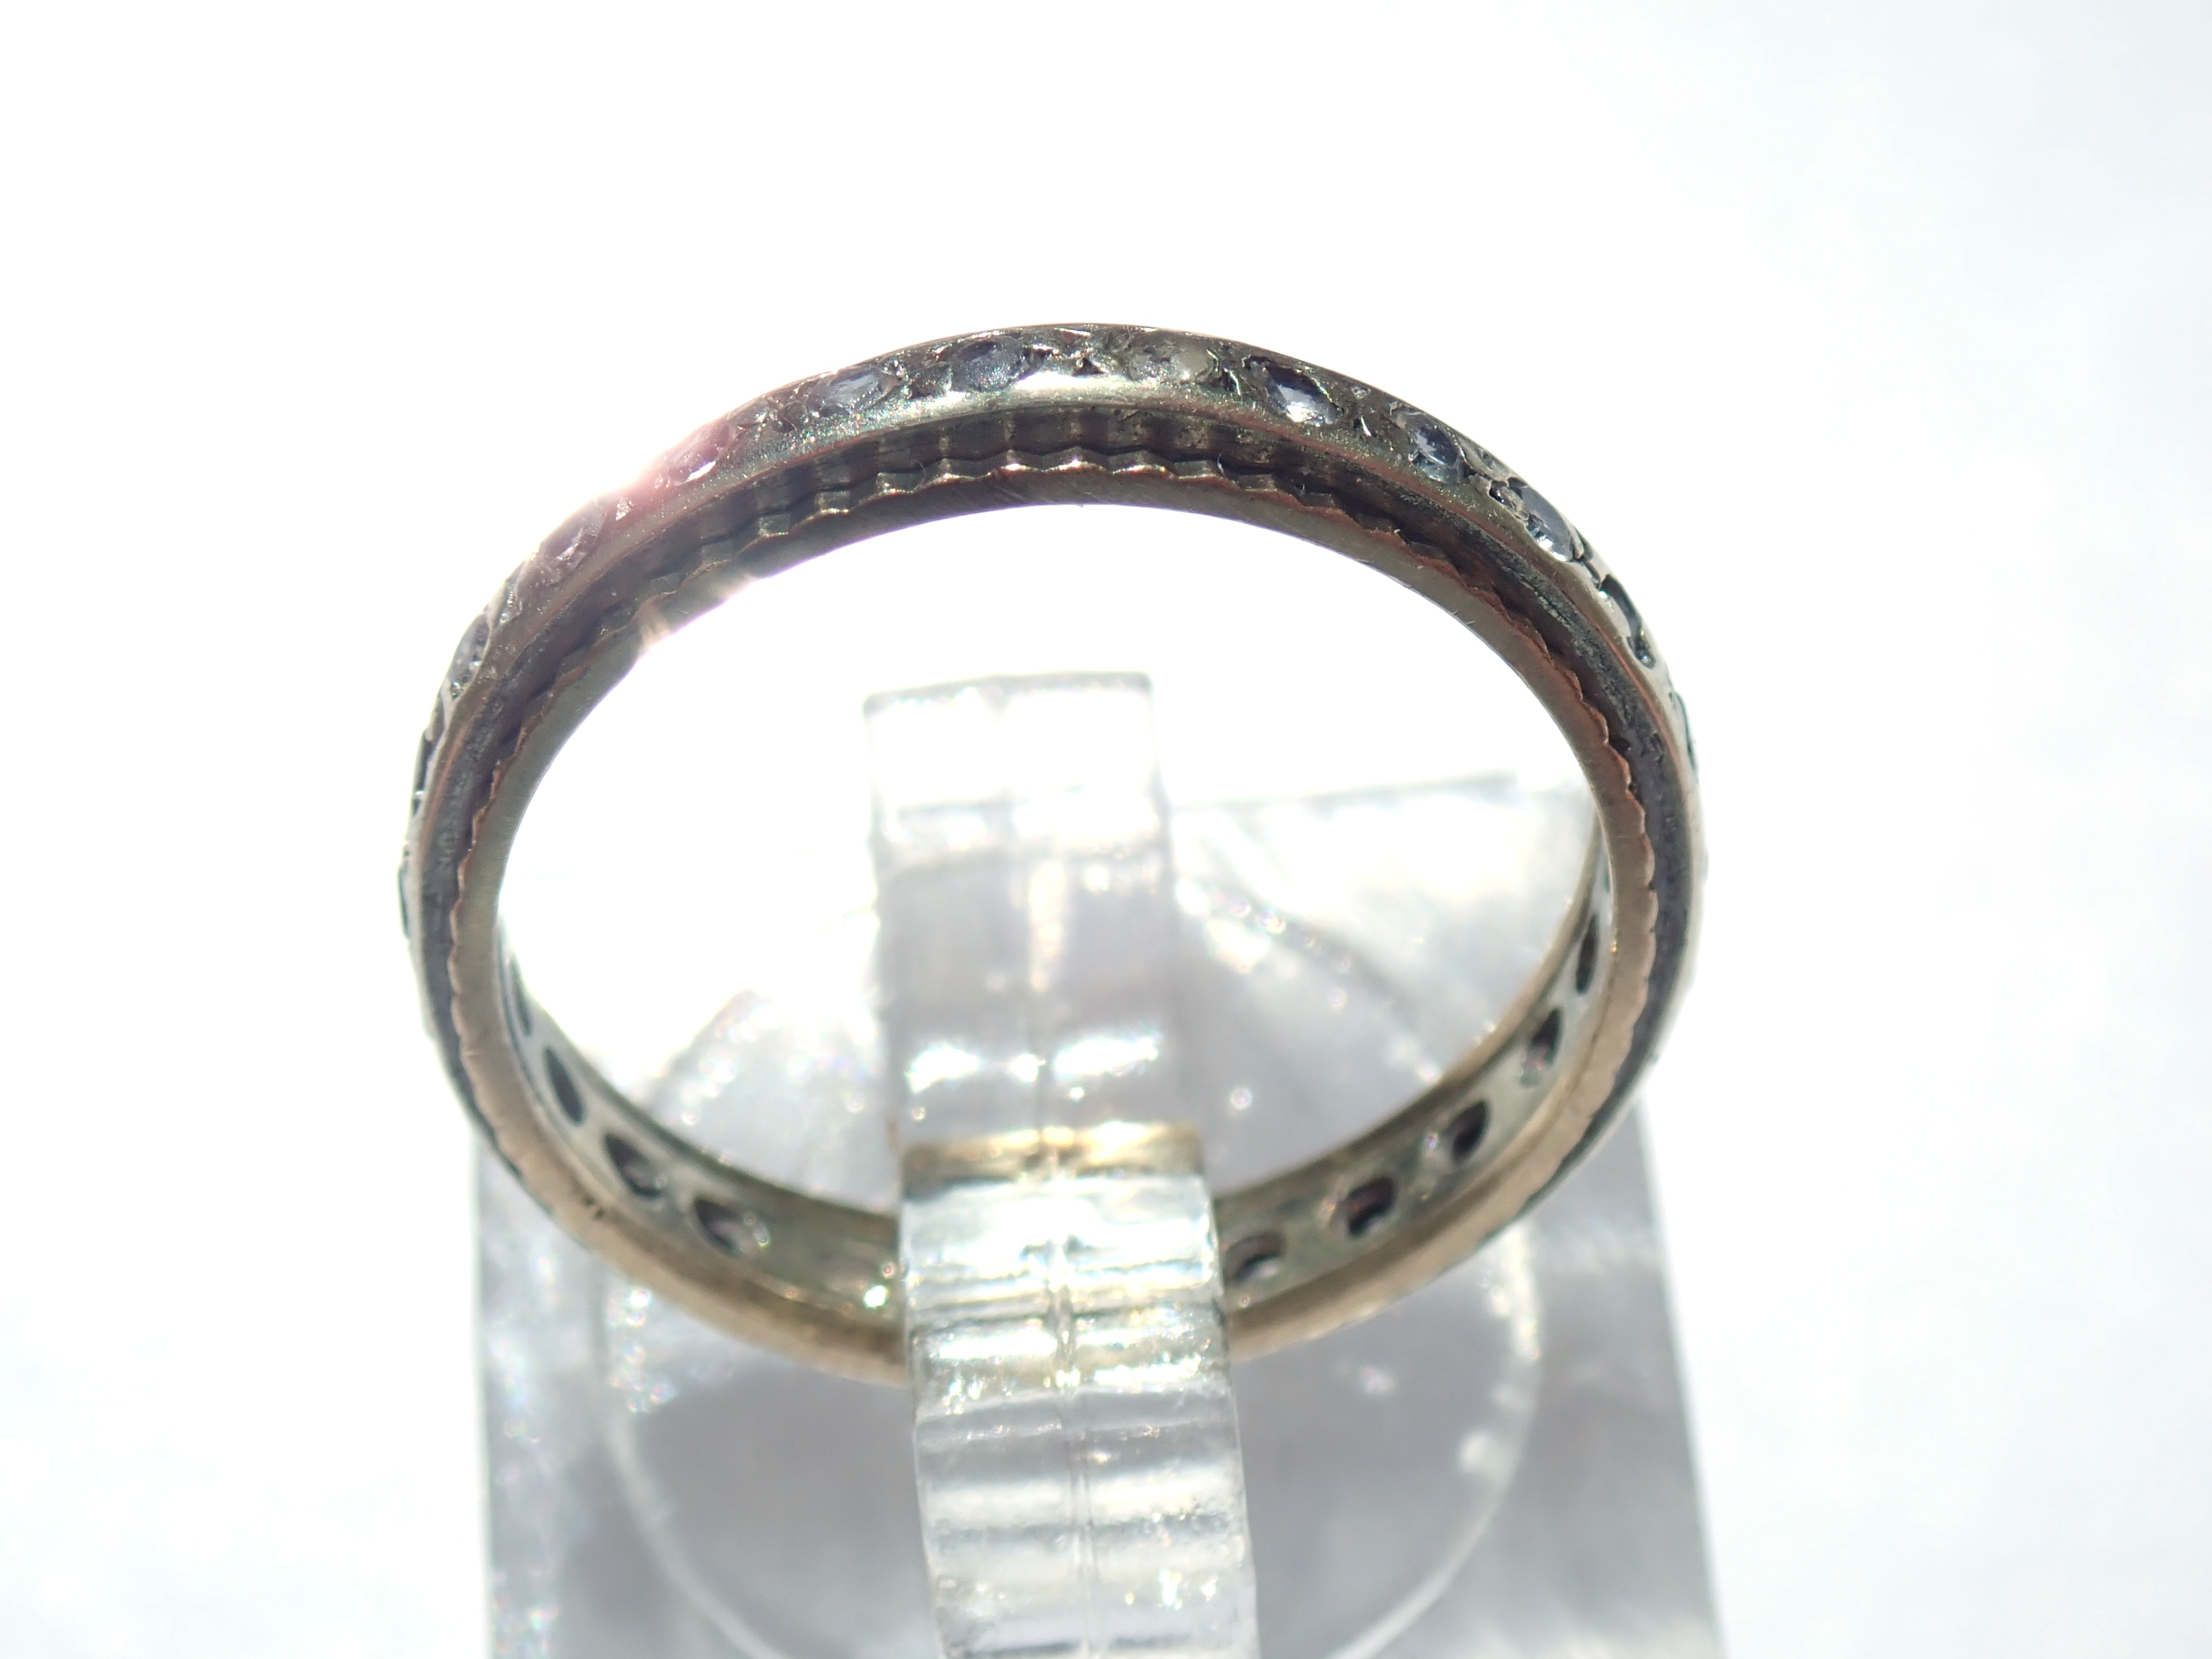 375 9ct Gold Cubic Zirconia Full Eternity Ring Size L1/2 – 2.0gms #33